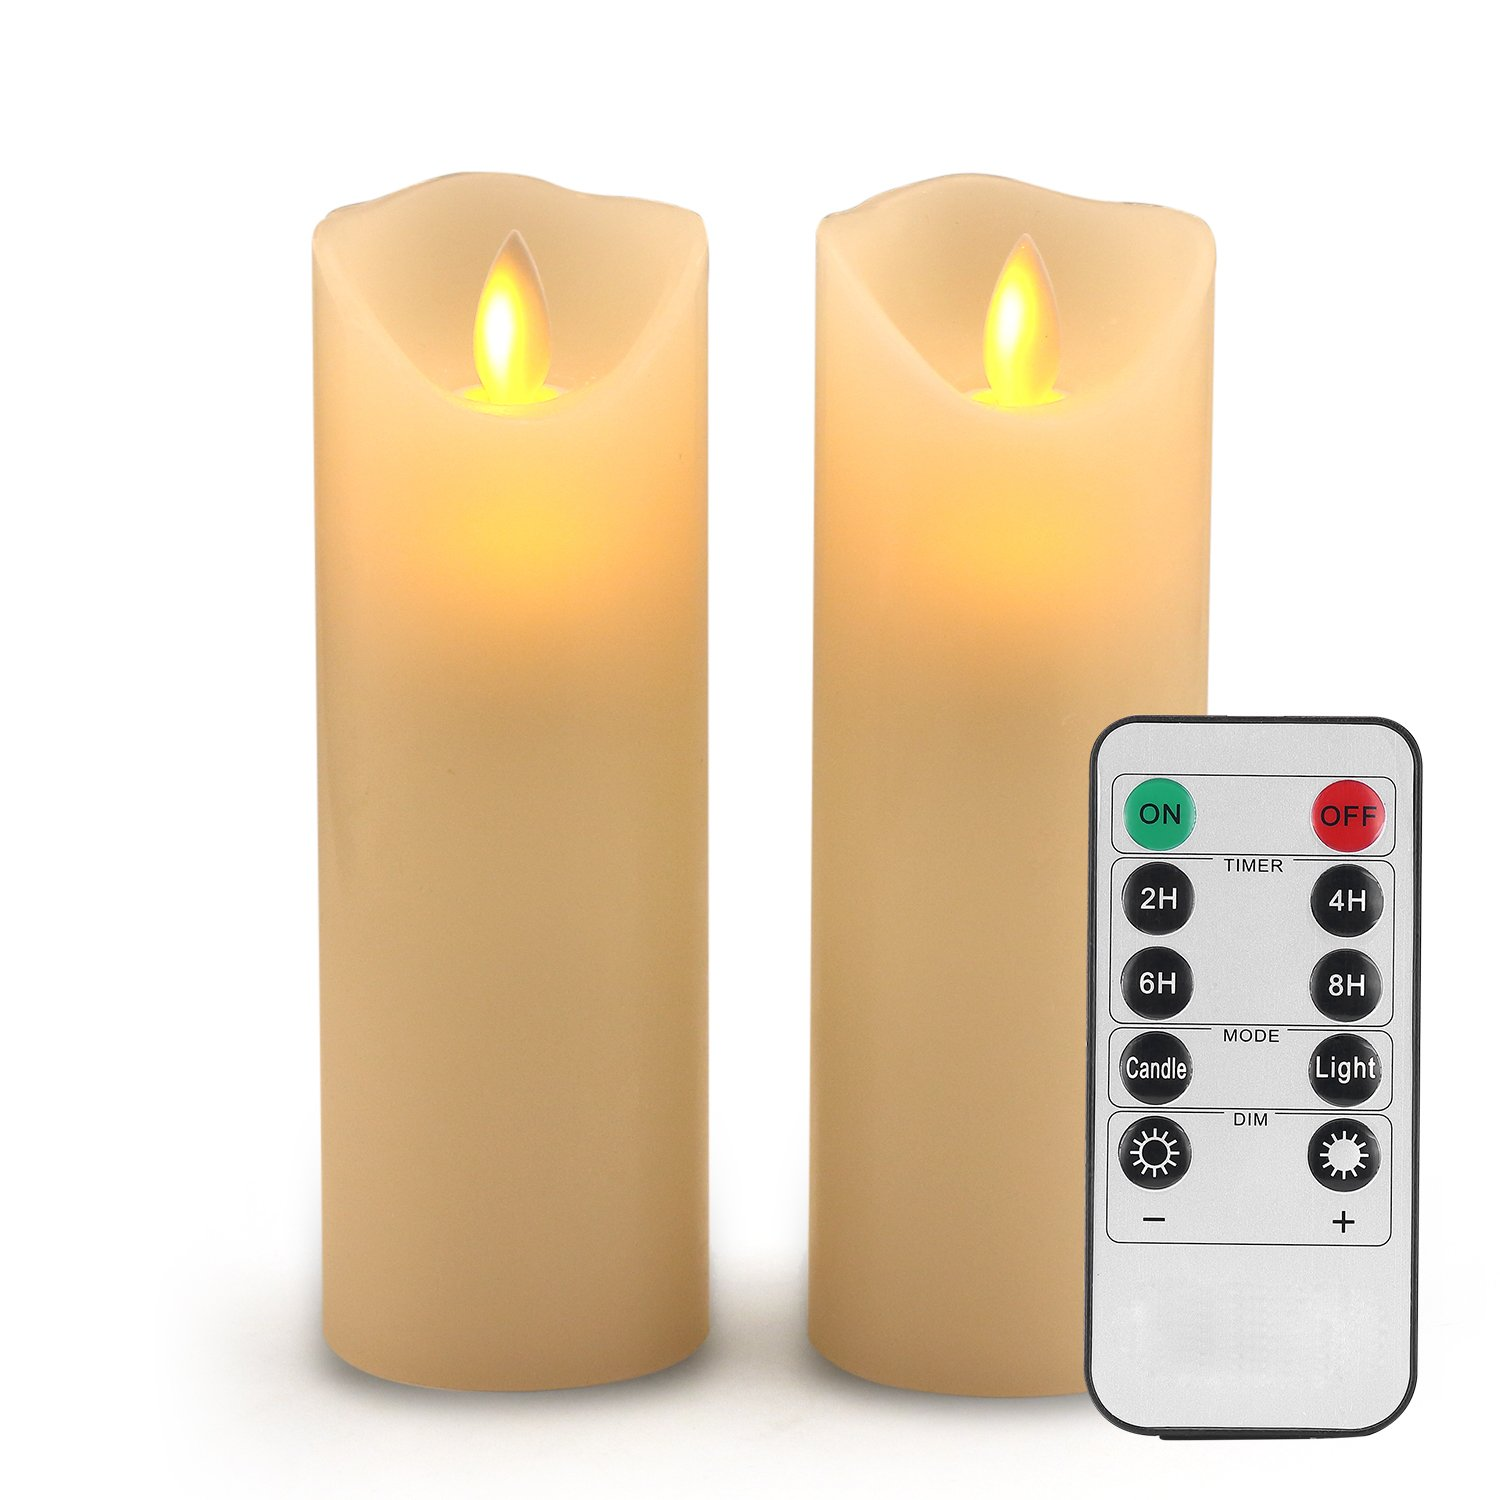 Flameless Candles Led Candles Set of 9(H 4'' 5'' 6'' 7'' 8'' 9'' xD 2.2'') Ivory Real Wax Battery Candles with Remote Timer by (Batteries not Included) … (Ivory, Set of 2)